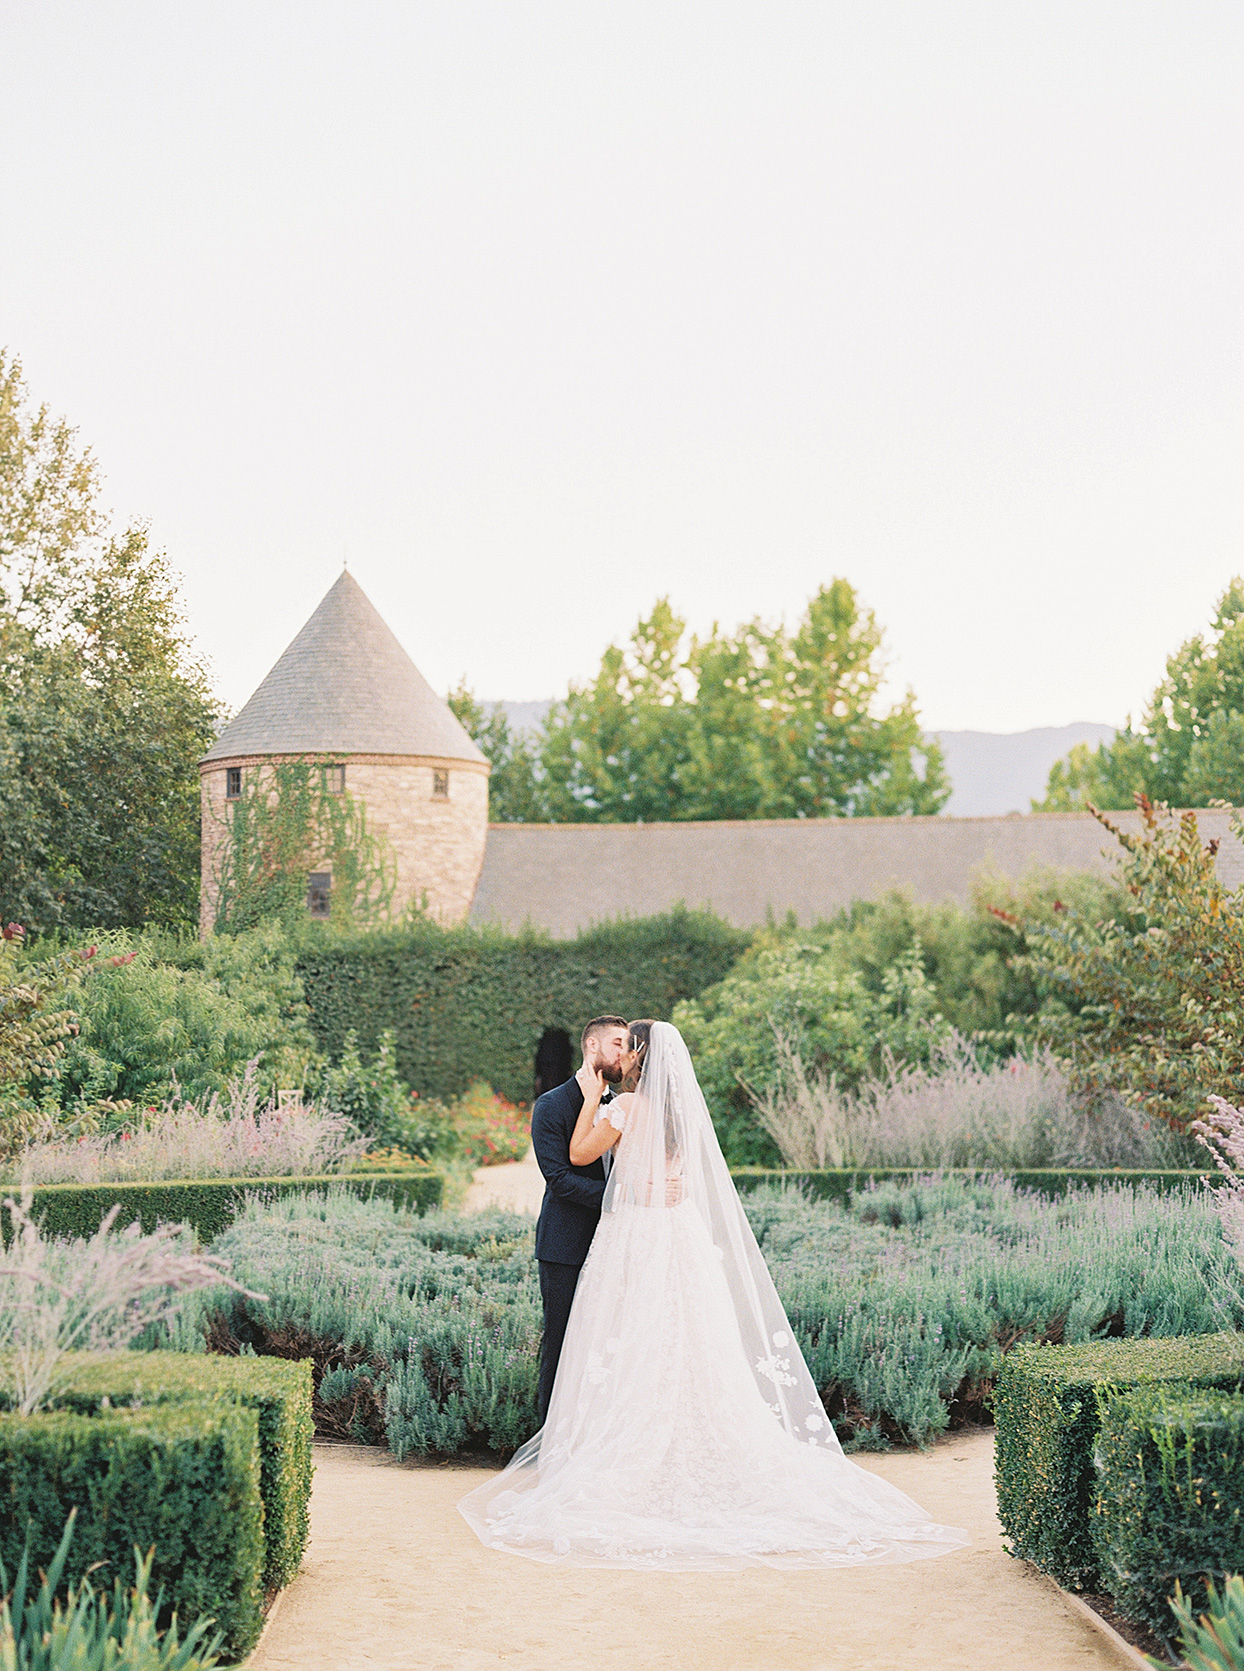 sam kyler wedding couple kissing in garden at venue